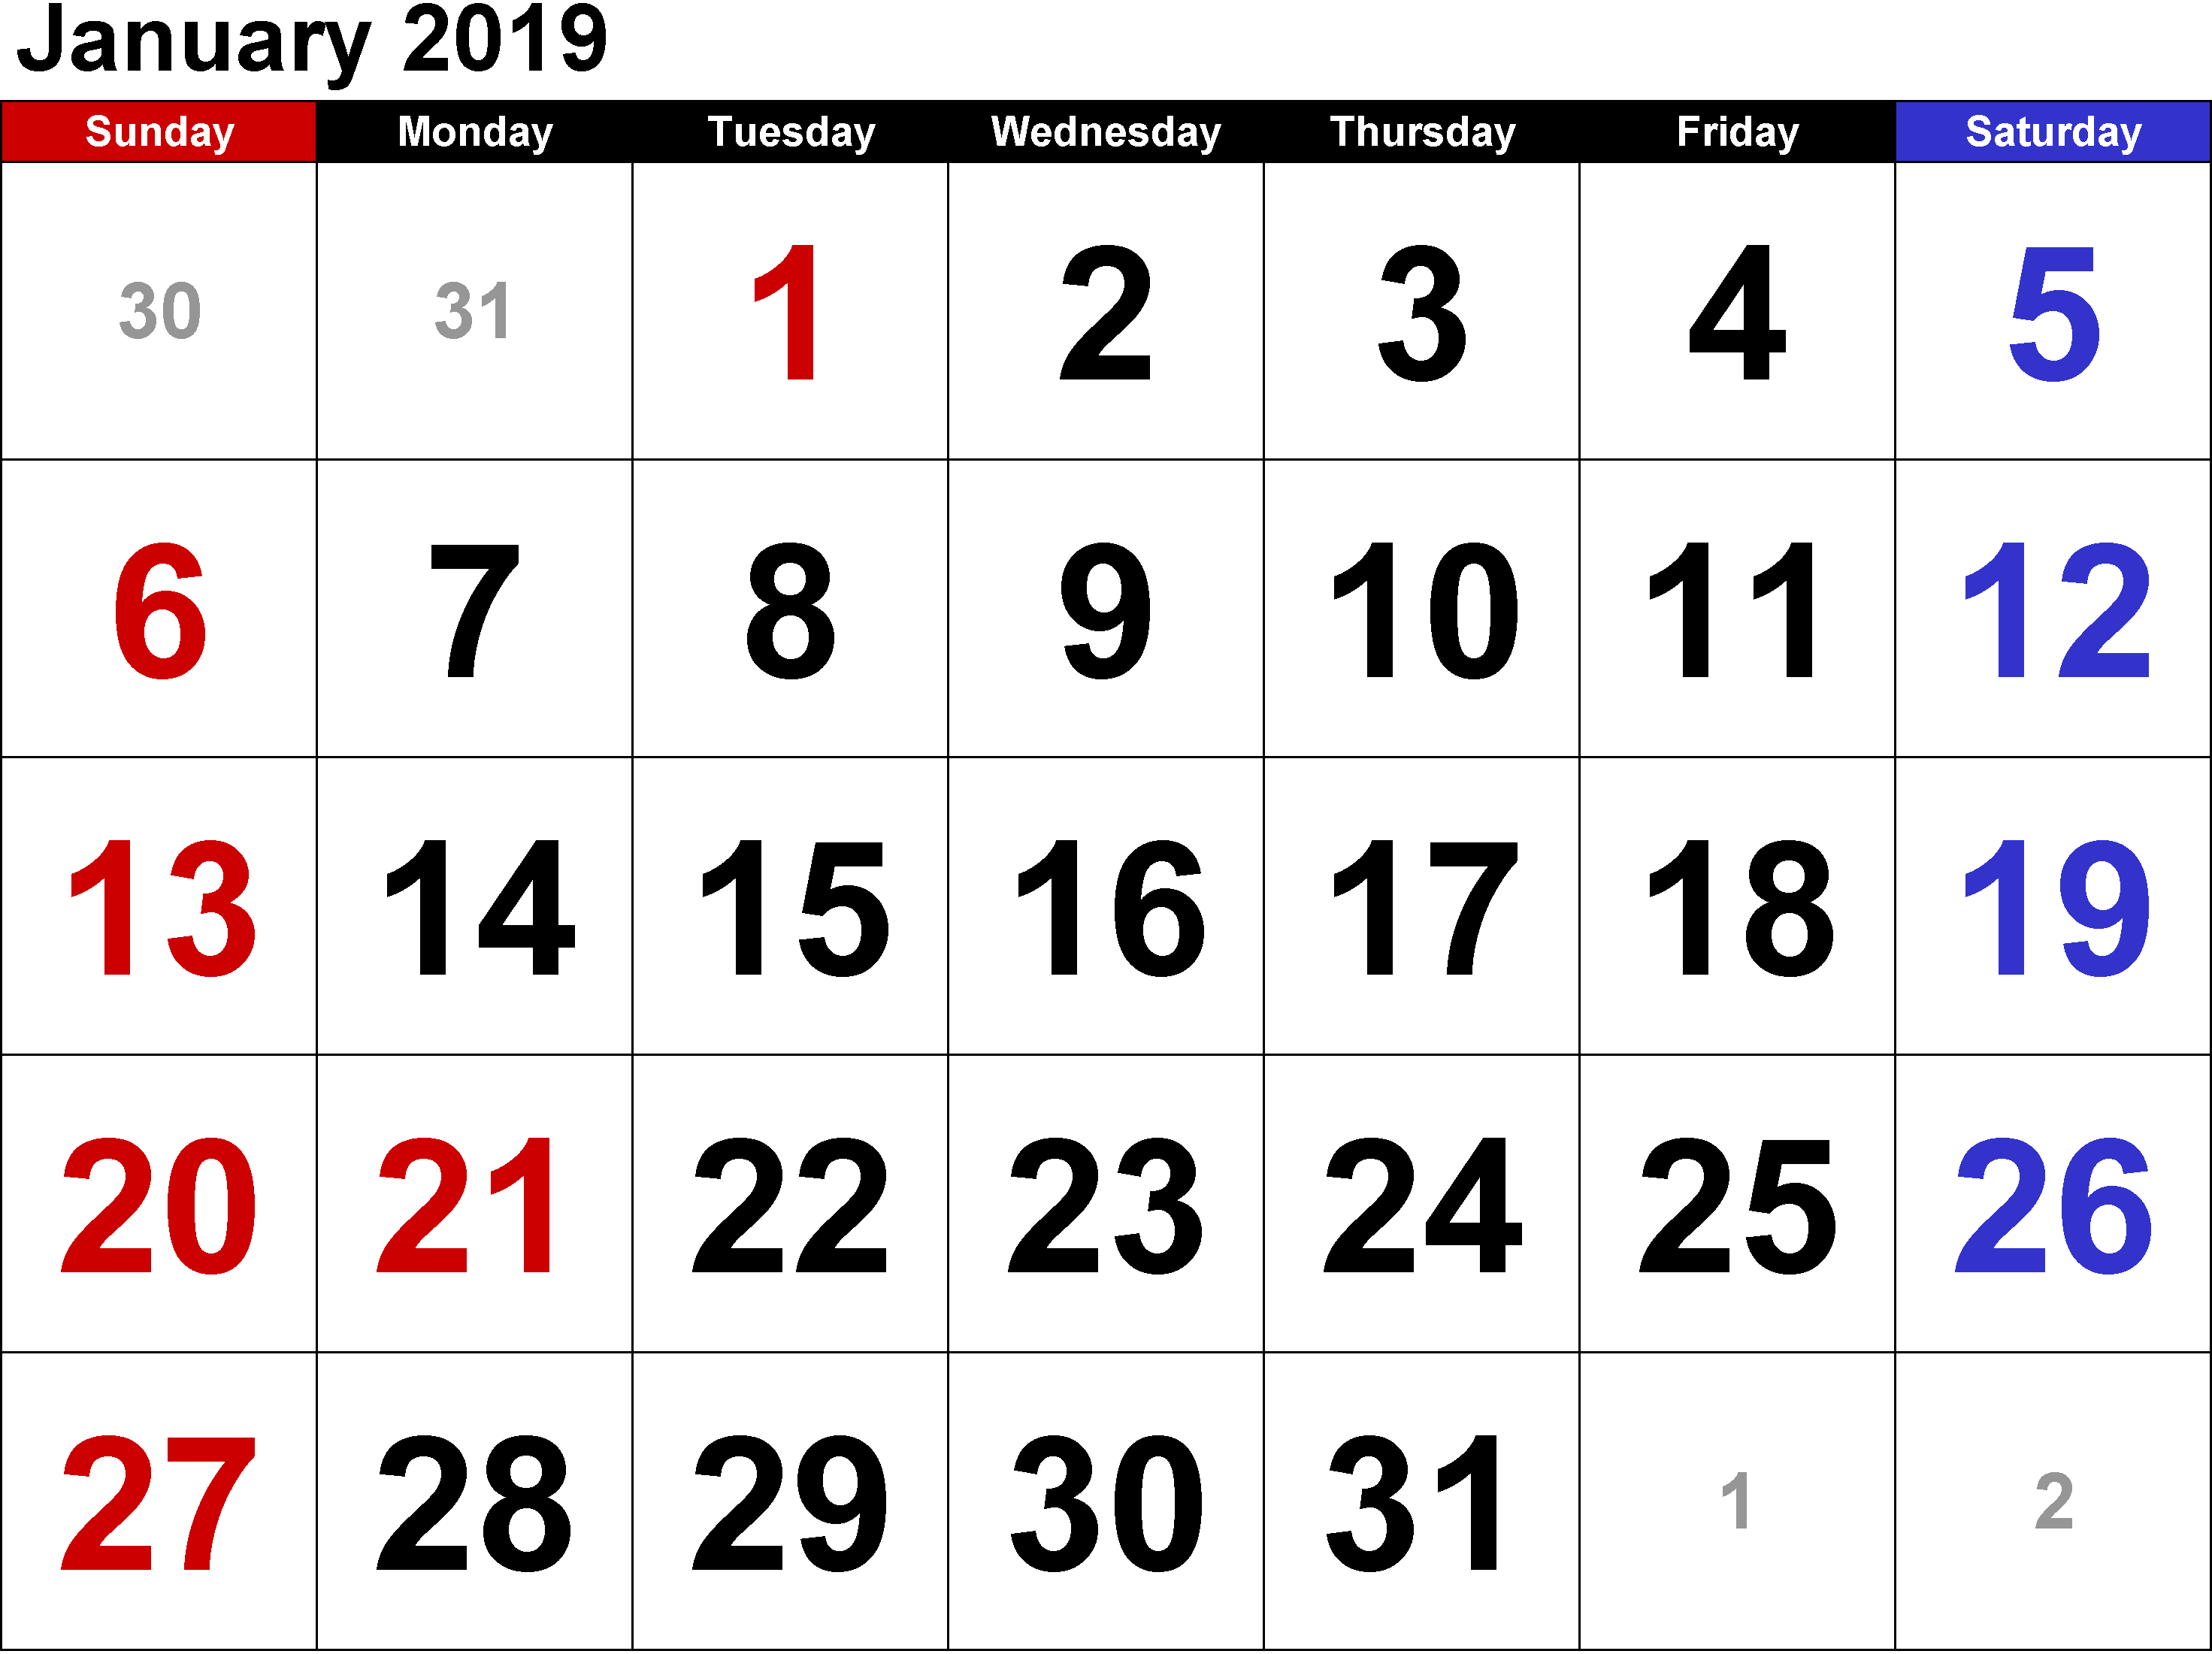 January 2019 Calendar With Holidays USA UK